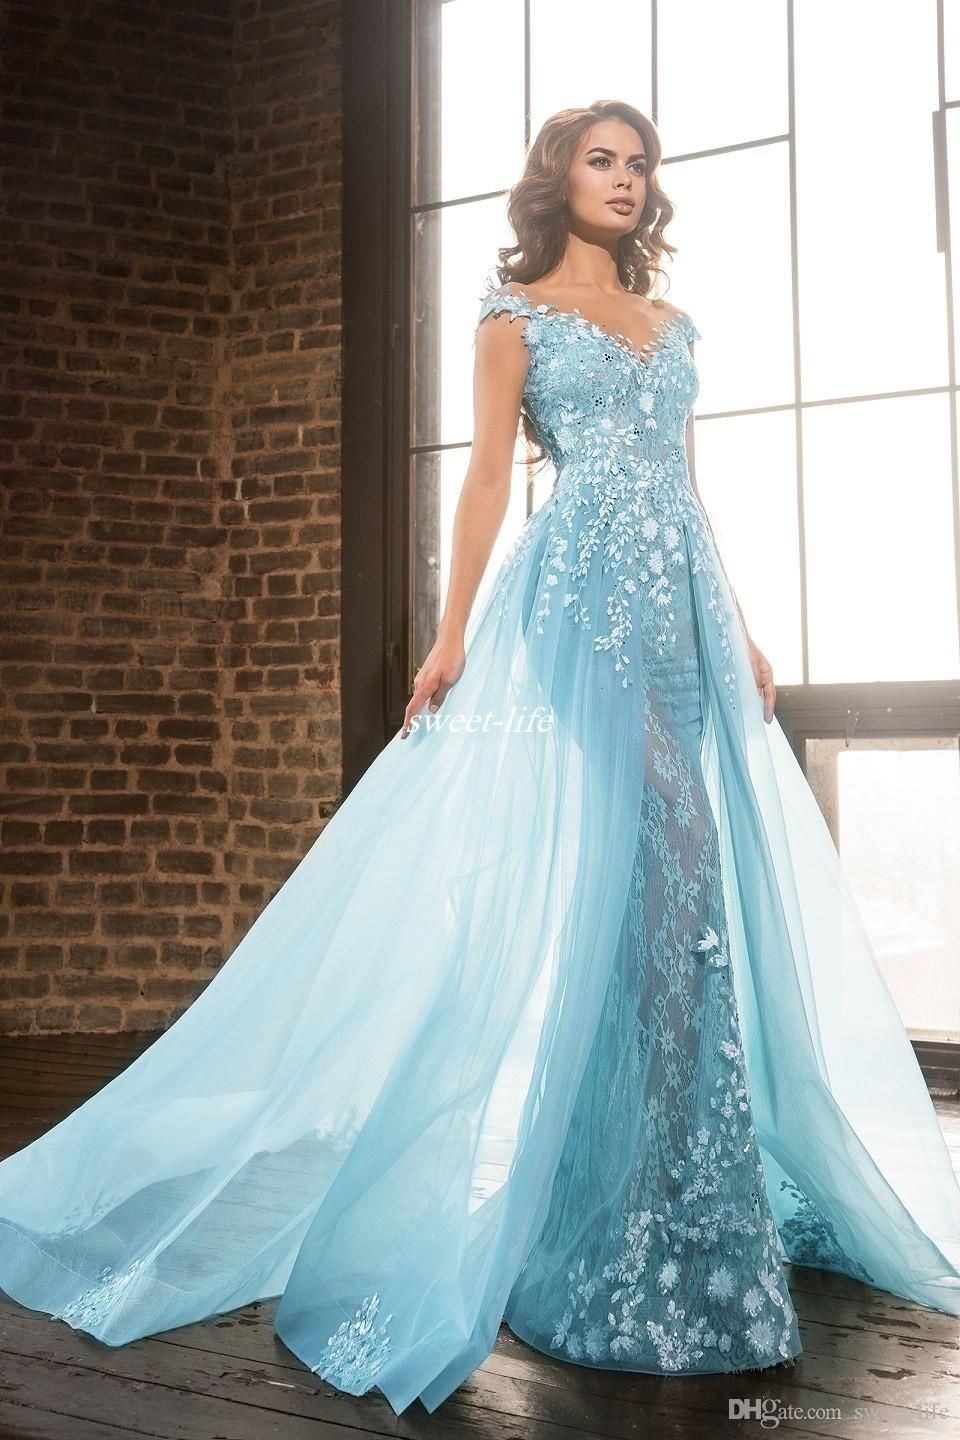 2017 Elie Saab Overskirts Pageant Celebrity Dresses Arabic Sheer Jewel Lace Applique Beads A Line Tulle Formal Evening Long Party Prom Gowns